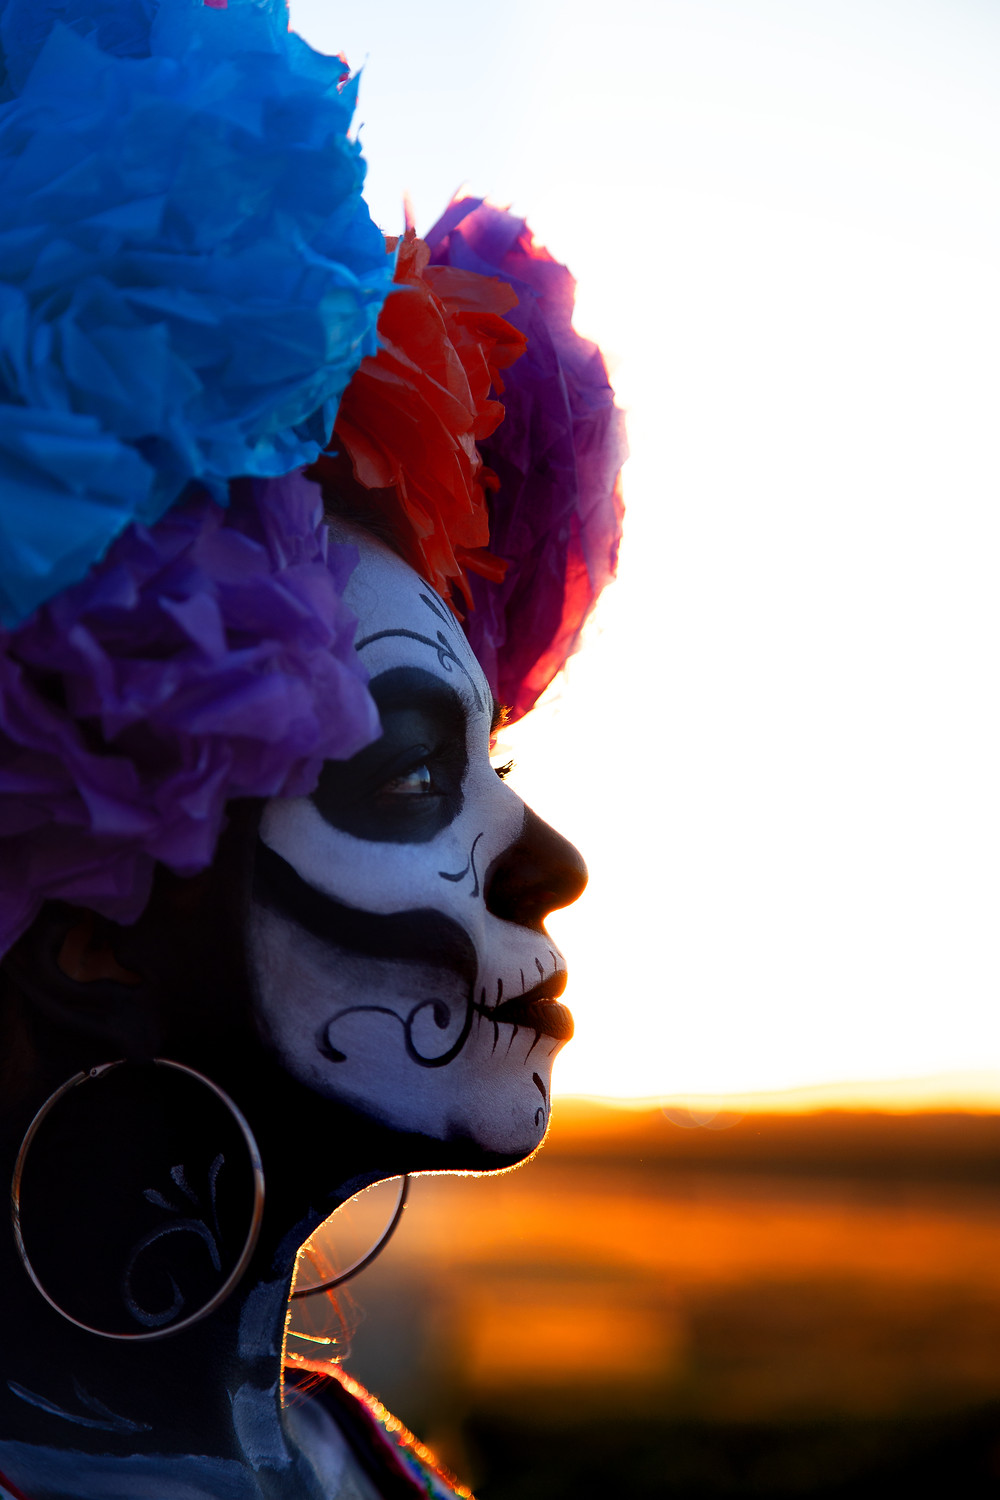 Model: Ereni Perez. La Catrina, a quintessential character of the traditional Day of the Dead festivity in Mexico, created by the mexican artist Jose Guadalupe Posadas, one of the latest pieces to be integrated during the early 1900's.